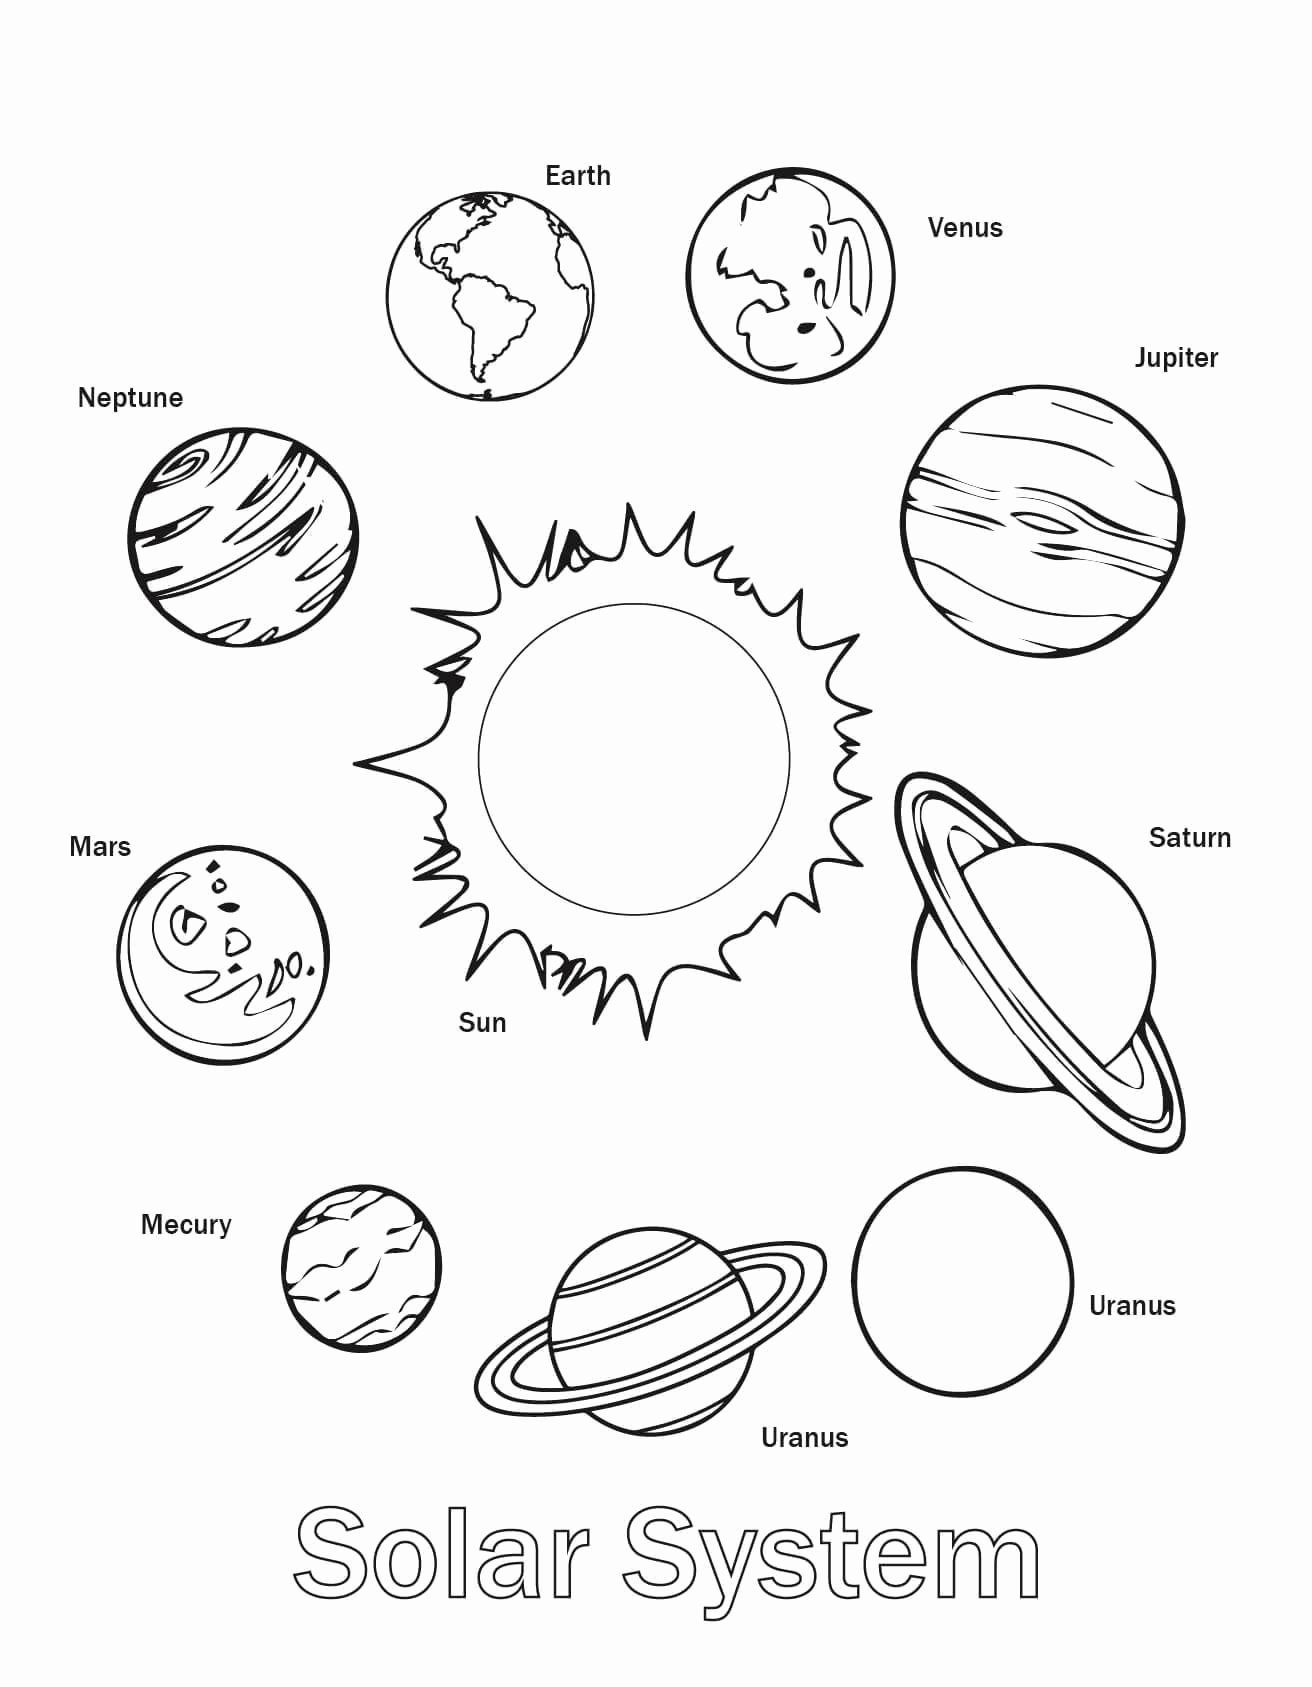 Solar System Planets Coloring Inspirational Free Printable Solar System Coloring Page Solar System Coloring Pages Solar System For Kids Solar System Worksheets [ 1687 x 1312 Pixel ]